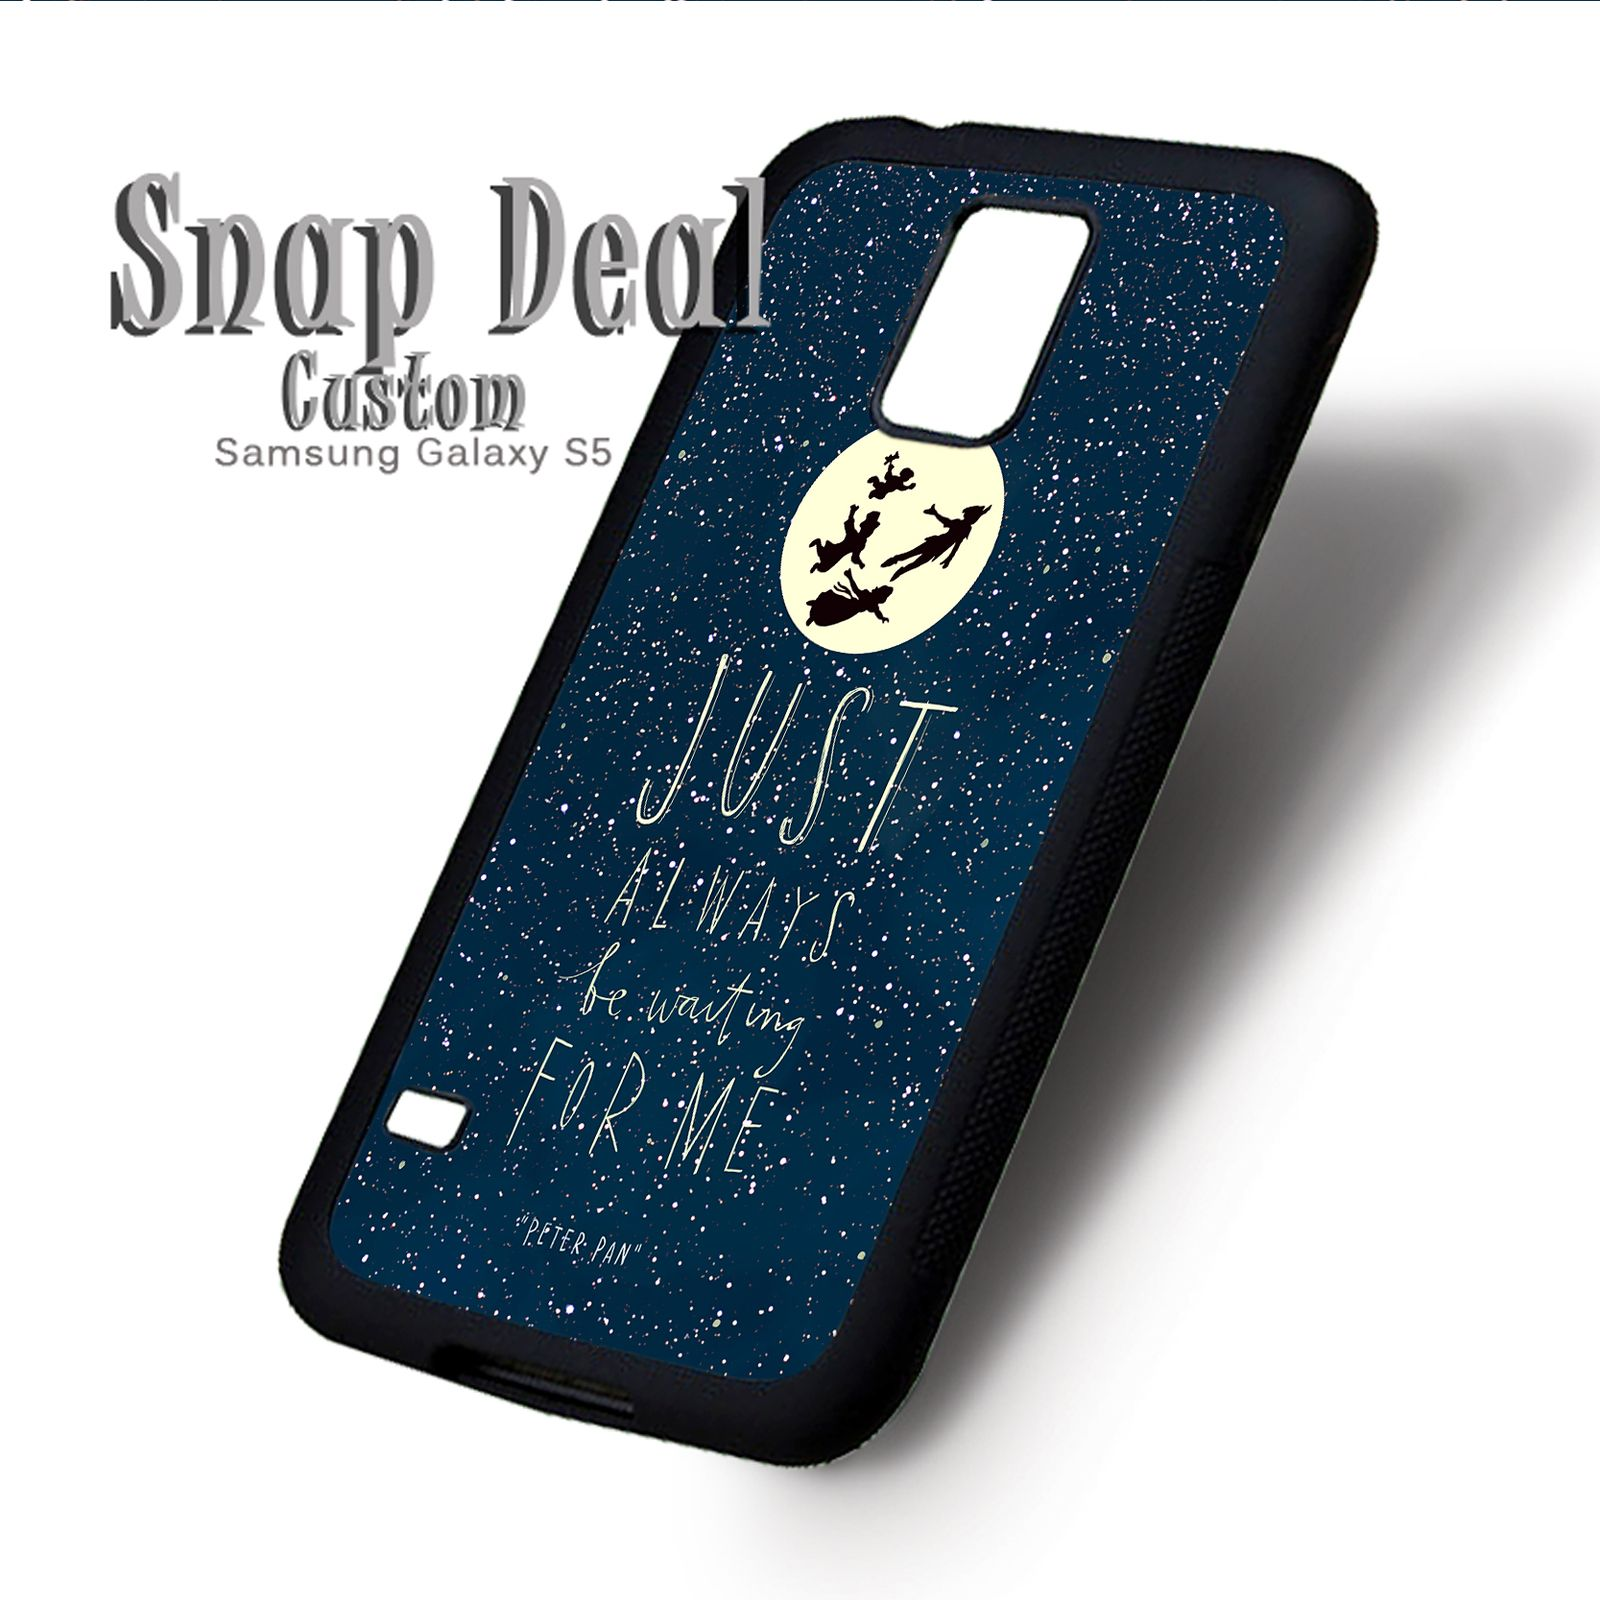 Peter Pan Quote For Samsung Galaxy S5 I9600 Case Case Samsung Galaxy S5 Samsung Galaxy